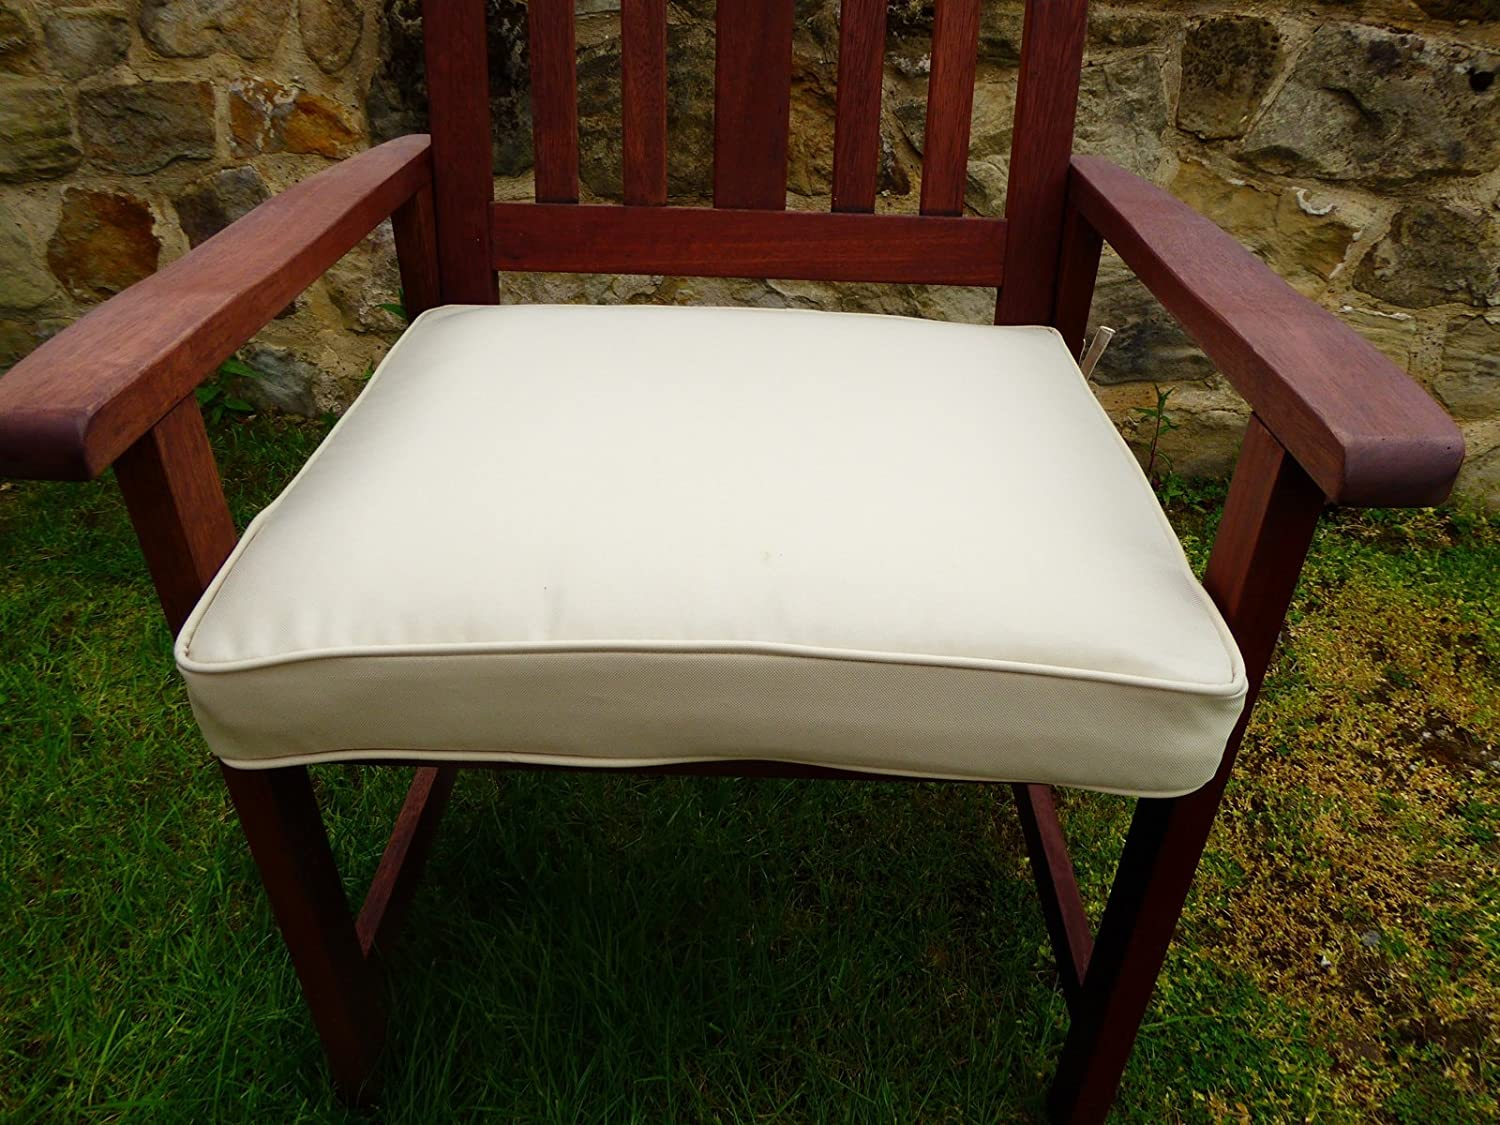 UK Gardens Cream Beige Deep Large Square Garden Furniture Chair Cushion  Seat Pad For Garden Armchair: Amazon.co.uk: Garden U0026 Outdoors Part 85